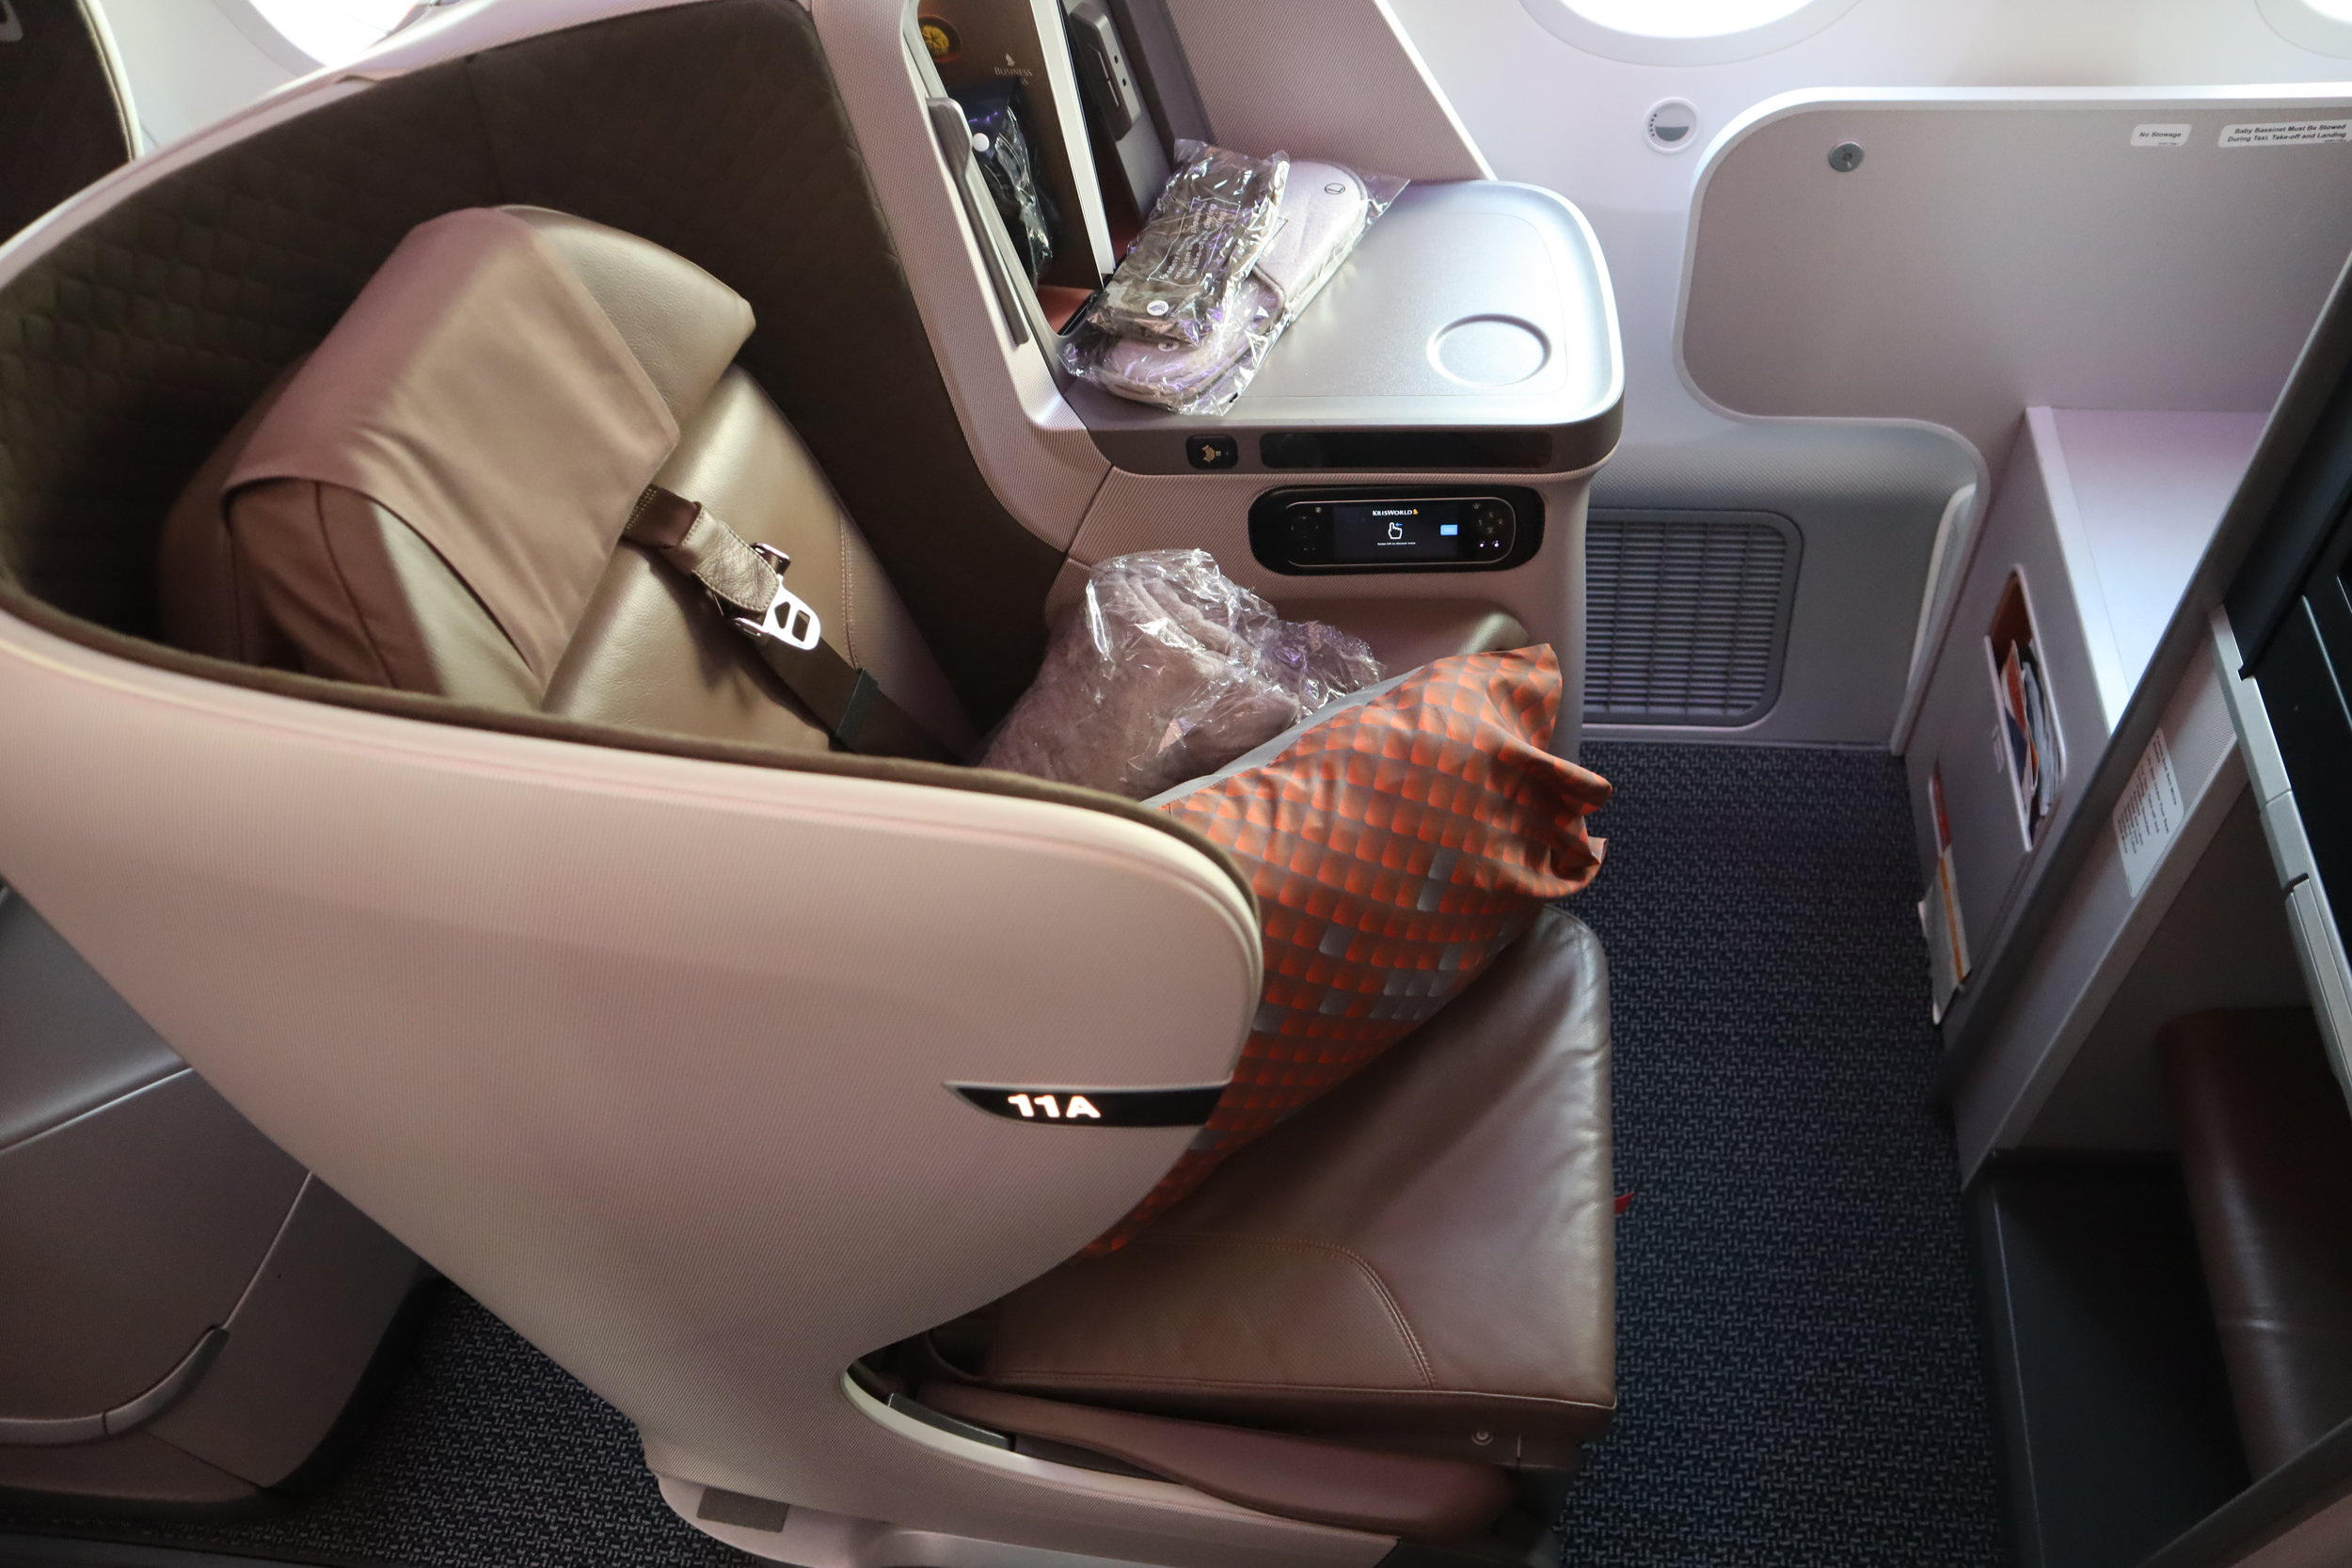 Singapore Airlines 787 business class